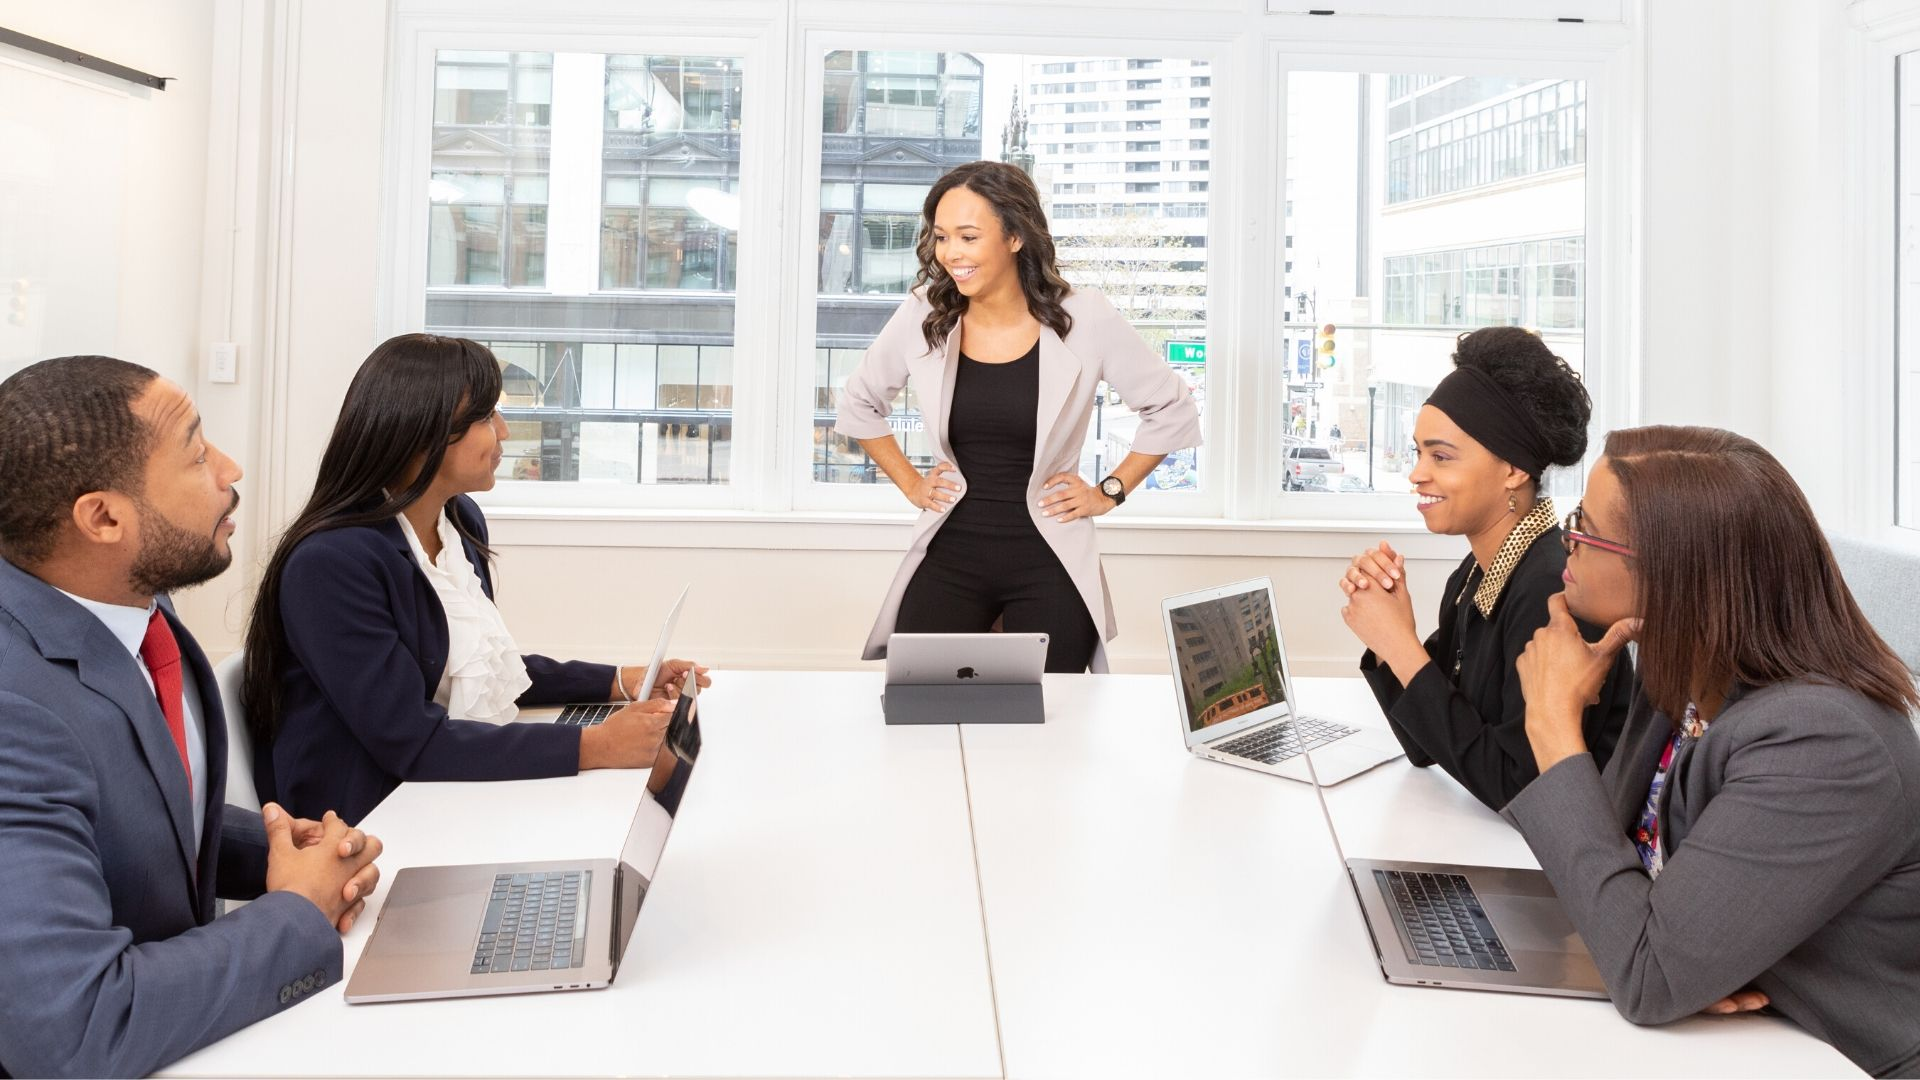 Woman leading a business meeting